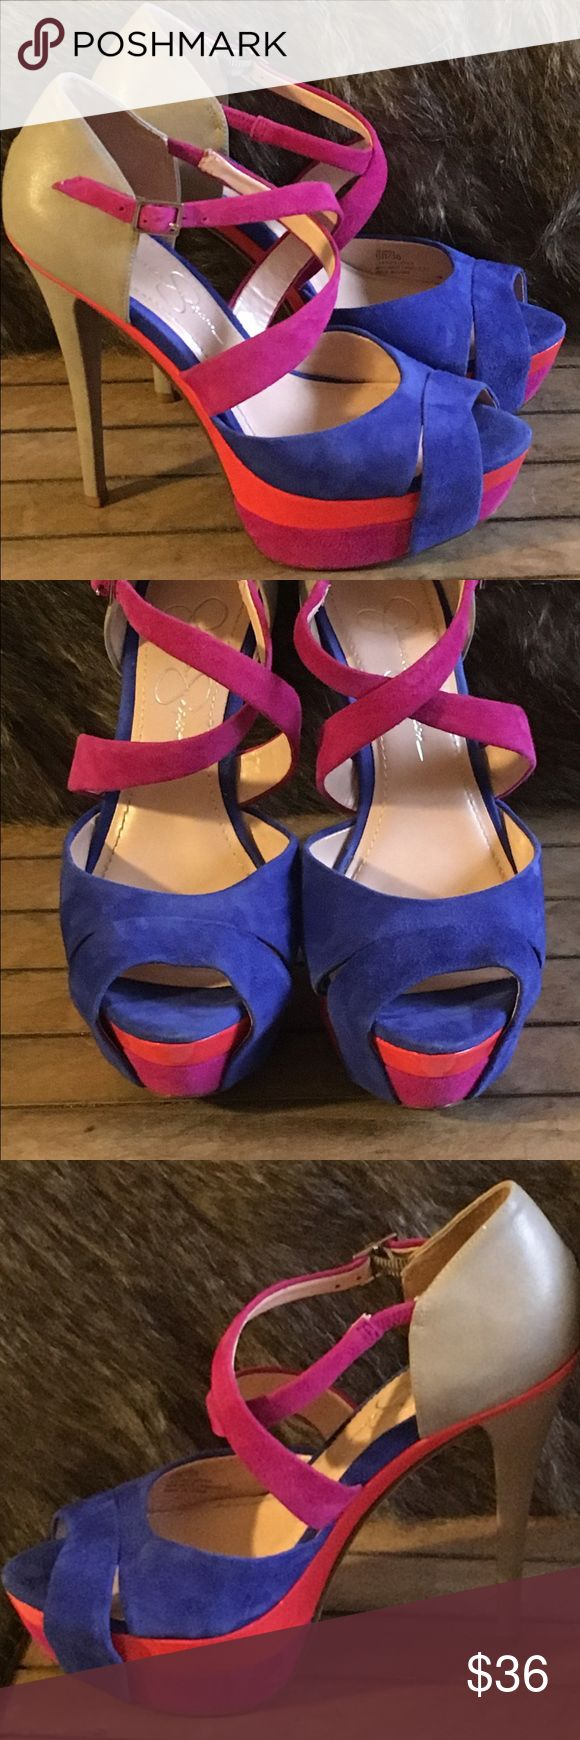 💸Jessica Simpson 👠 wish platform pumps 🔥🔥sale 💰💰Excellent heals Jessica Simpson Women's Wish Open Toe Sandal in Blue Iris Combo. With a high, high 5-inch heel offset by a 1½-inch platform, this shoe is perfectly formed and executed, flawless, luxurious to the touch, and beyond any doubt an eye-cather! Jessica Simpson Shoes Heels